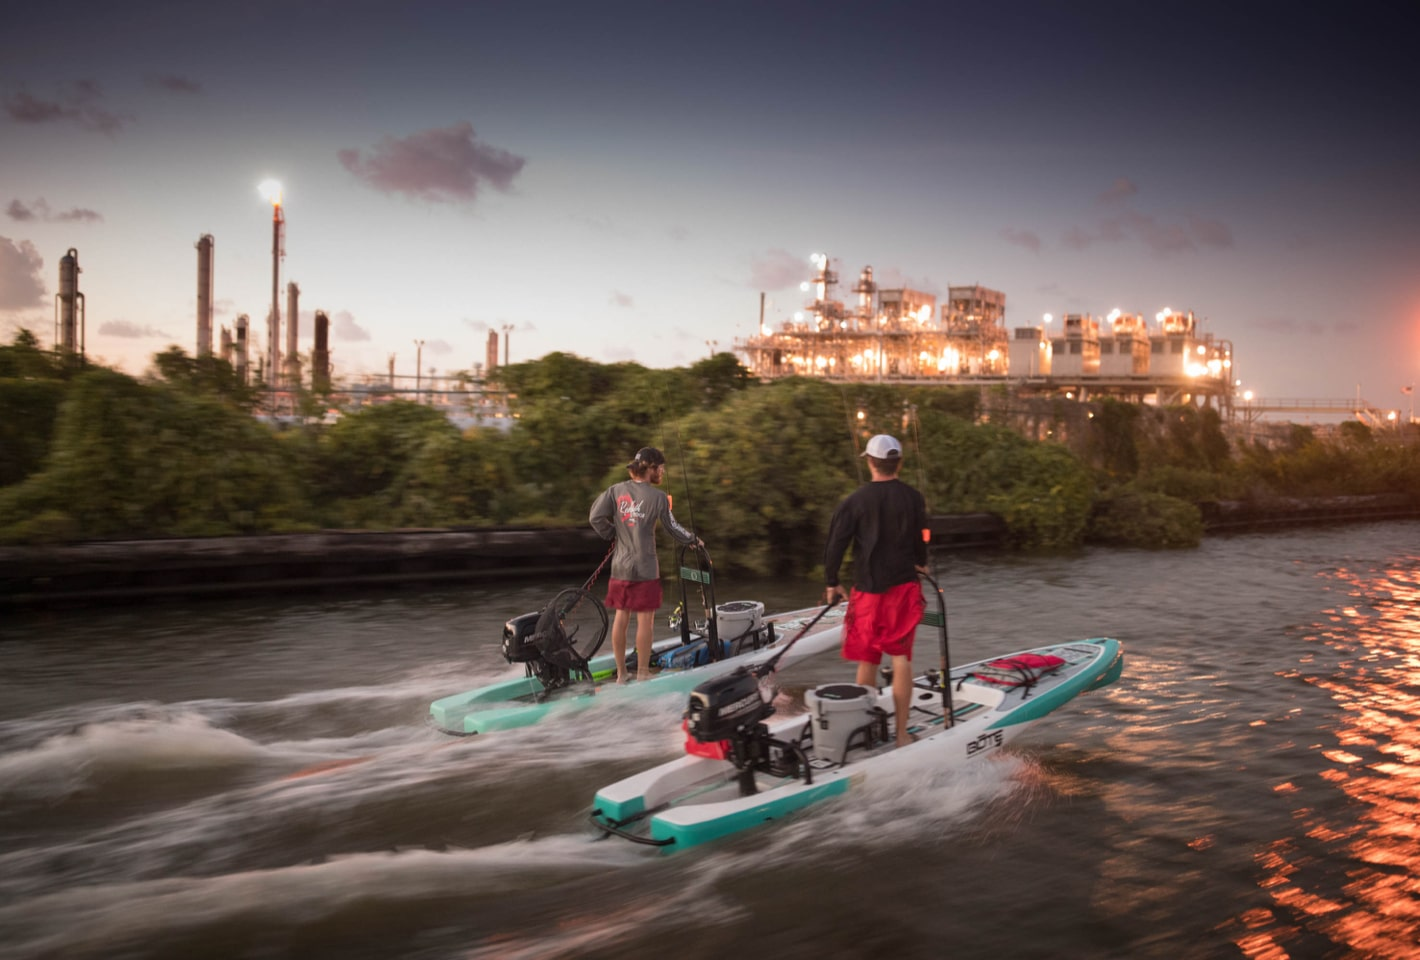 Red and Brown Frenette riding their BOTE Rover microskiffs next to refineries